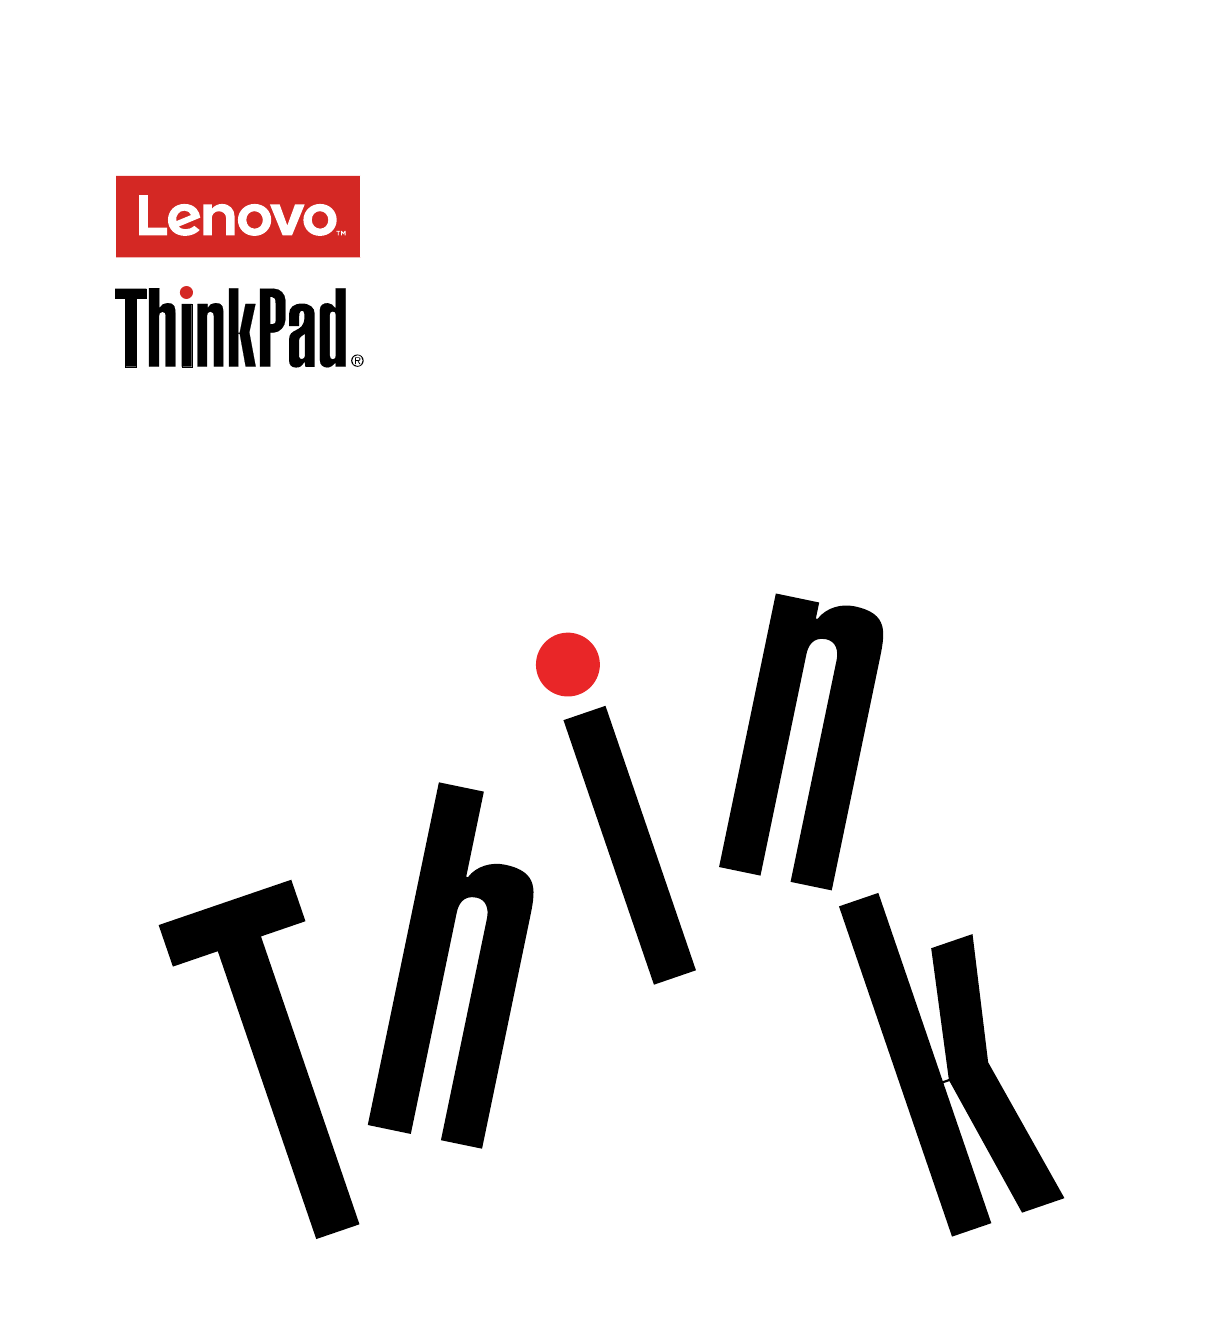 Lenovo L560 Ug De User Manual (German) Guide Think Pad